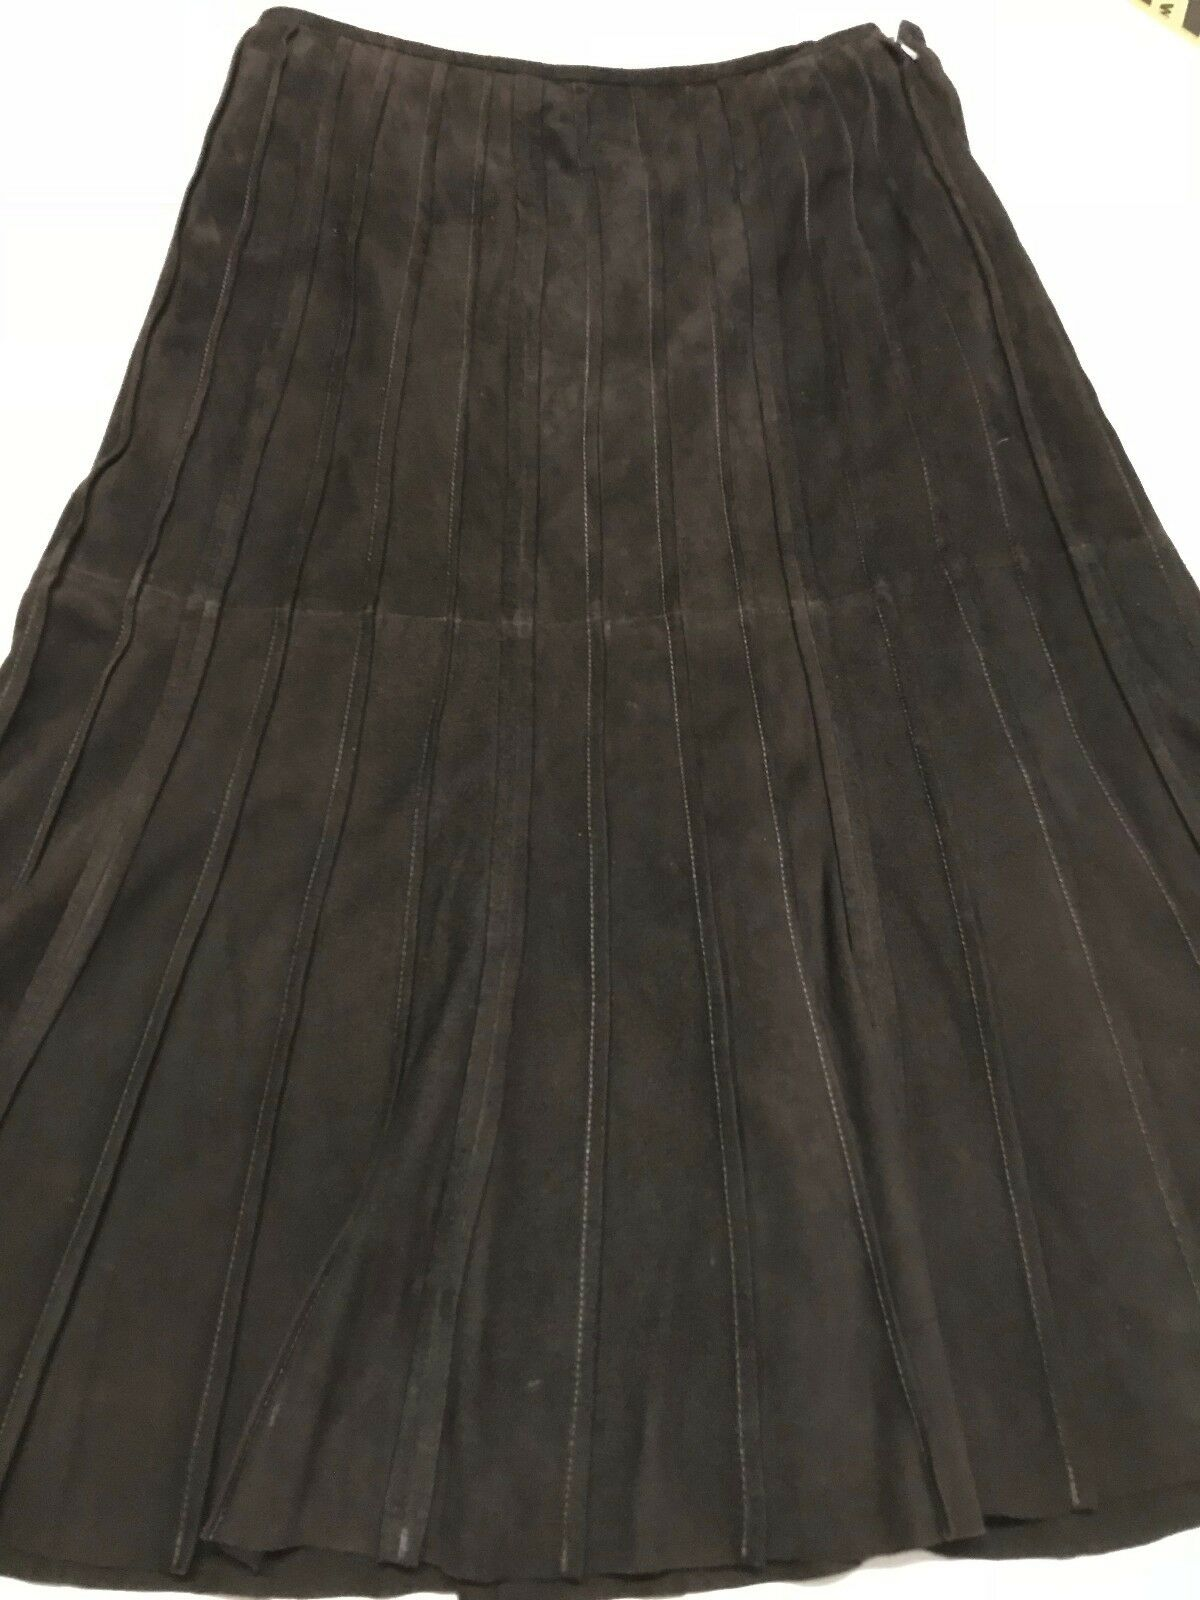 Lafayette 148 Women's Skirt Brown Suede Luxurious Skirt Size 8